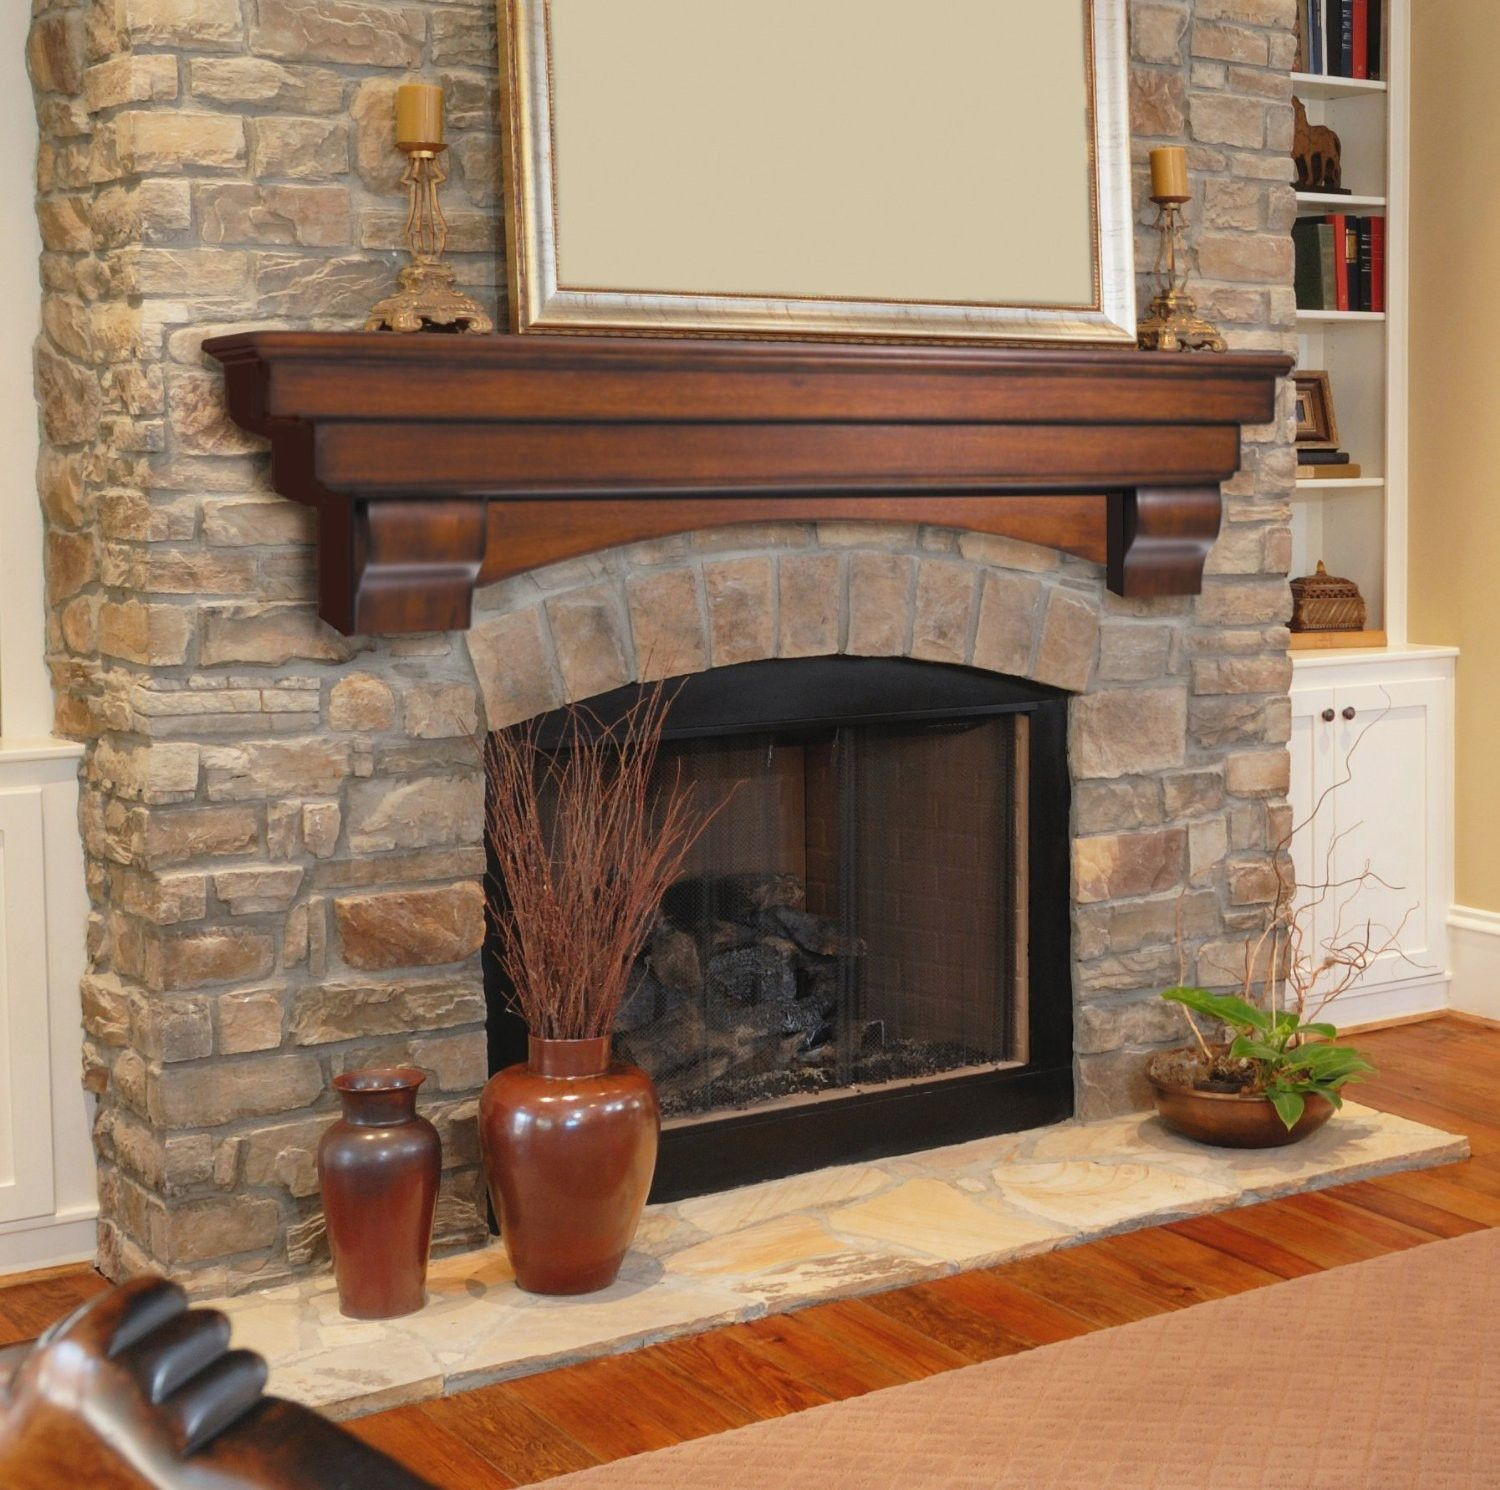 Faux Holz Kaminsims #Kamin Fireplace Shelves, Fireplace Ideas, Mantel Ideas,  Mantle Shelf